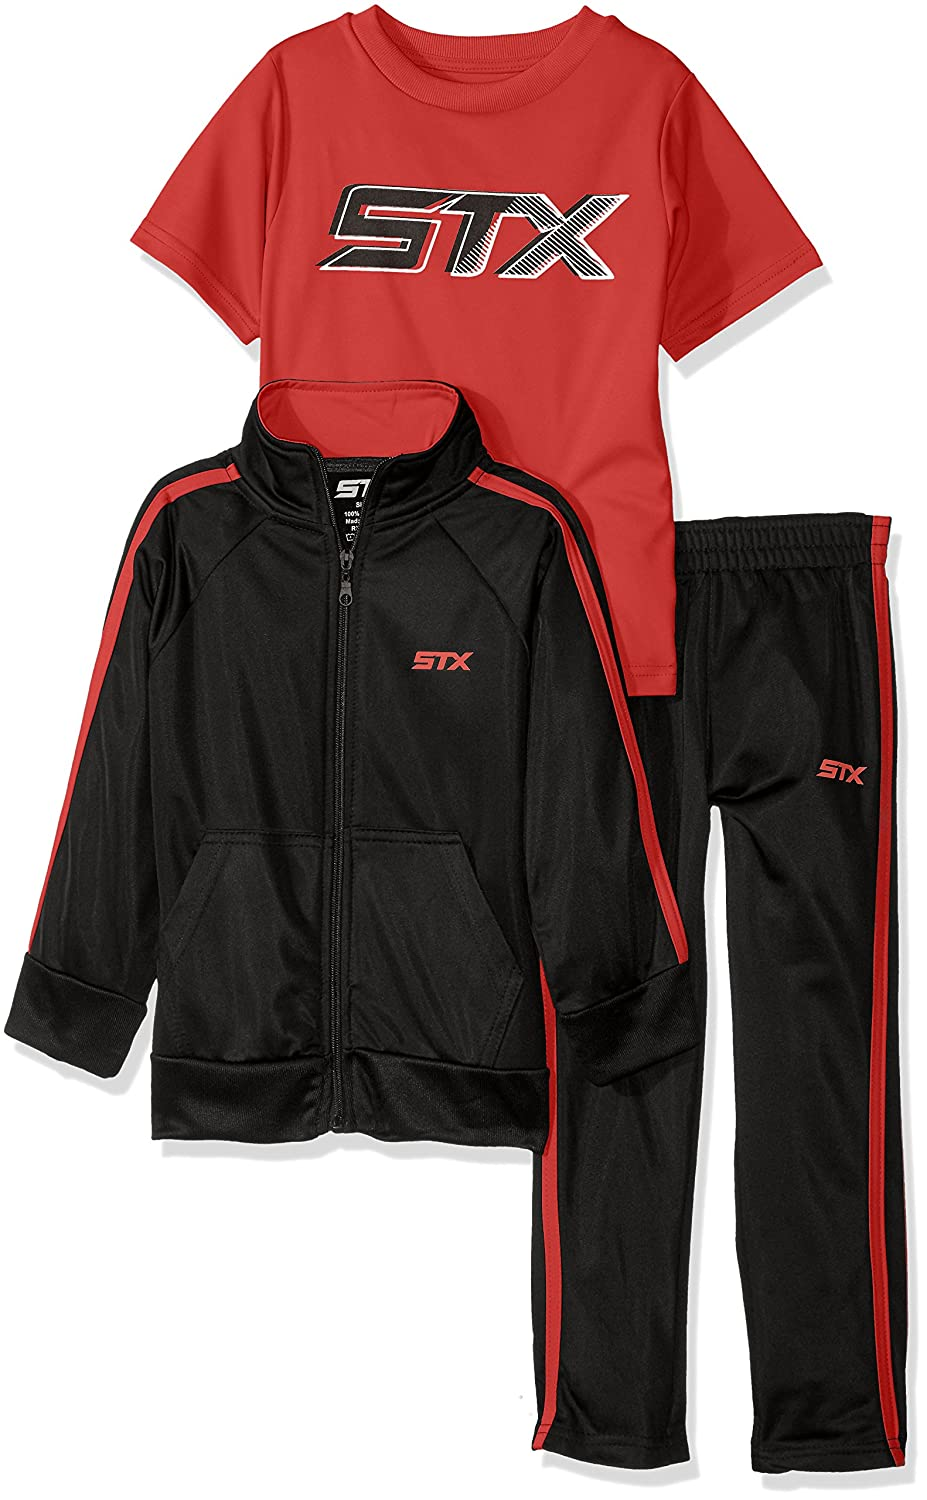 STX Boys Tricot Jacket and Pant with Logo T-Shirt